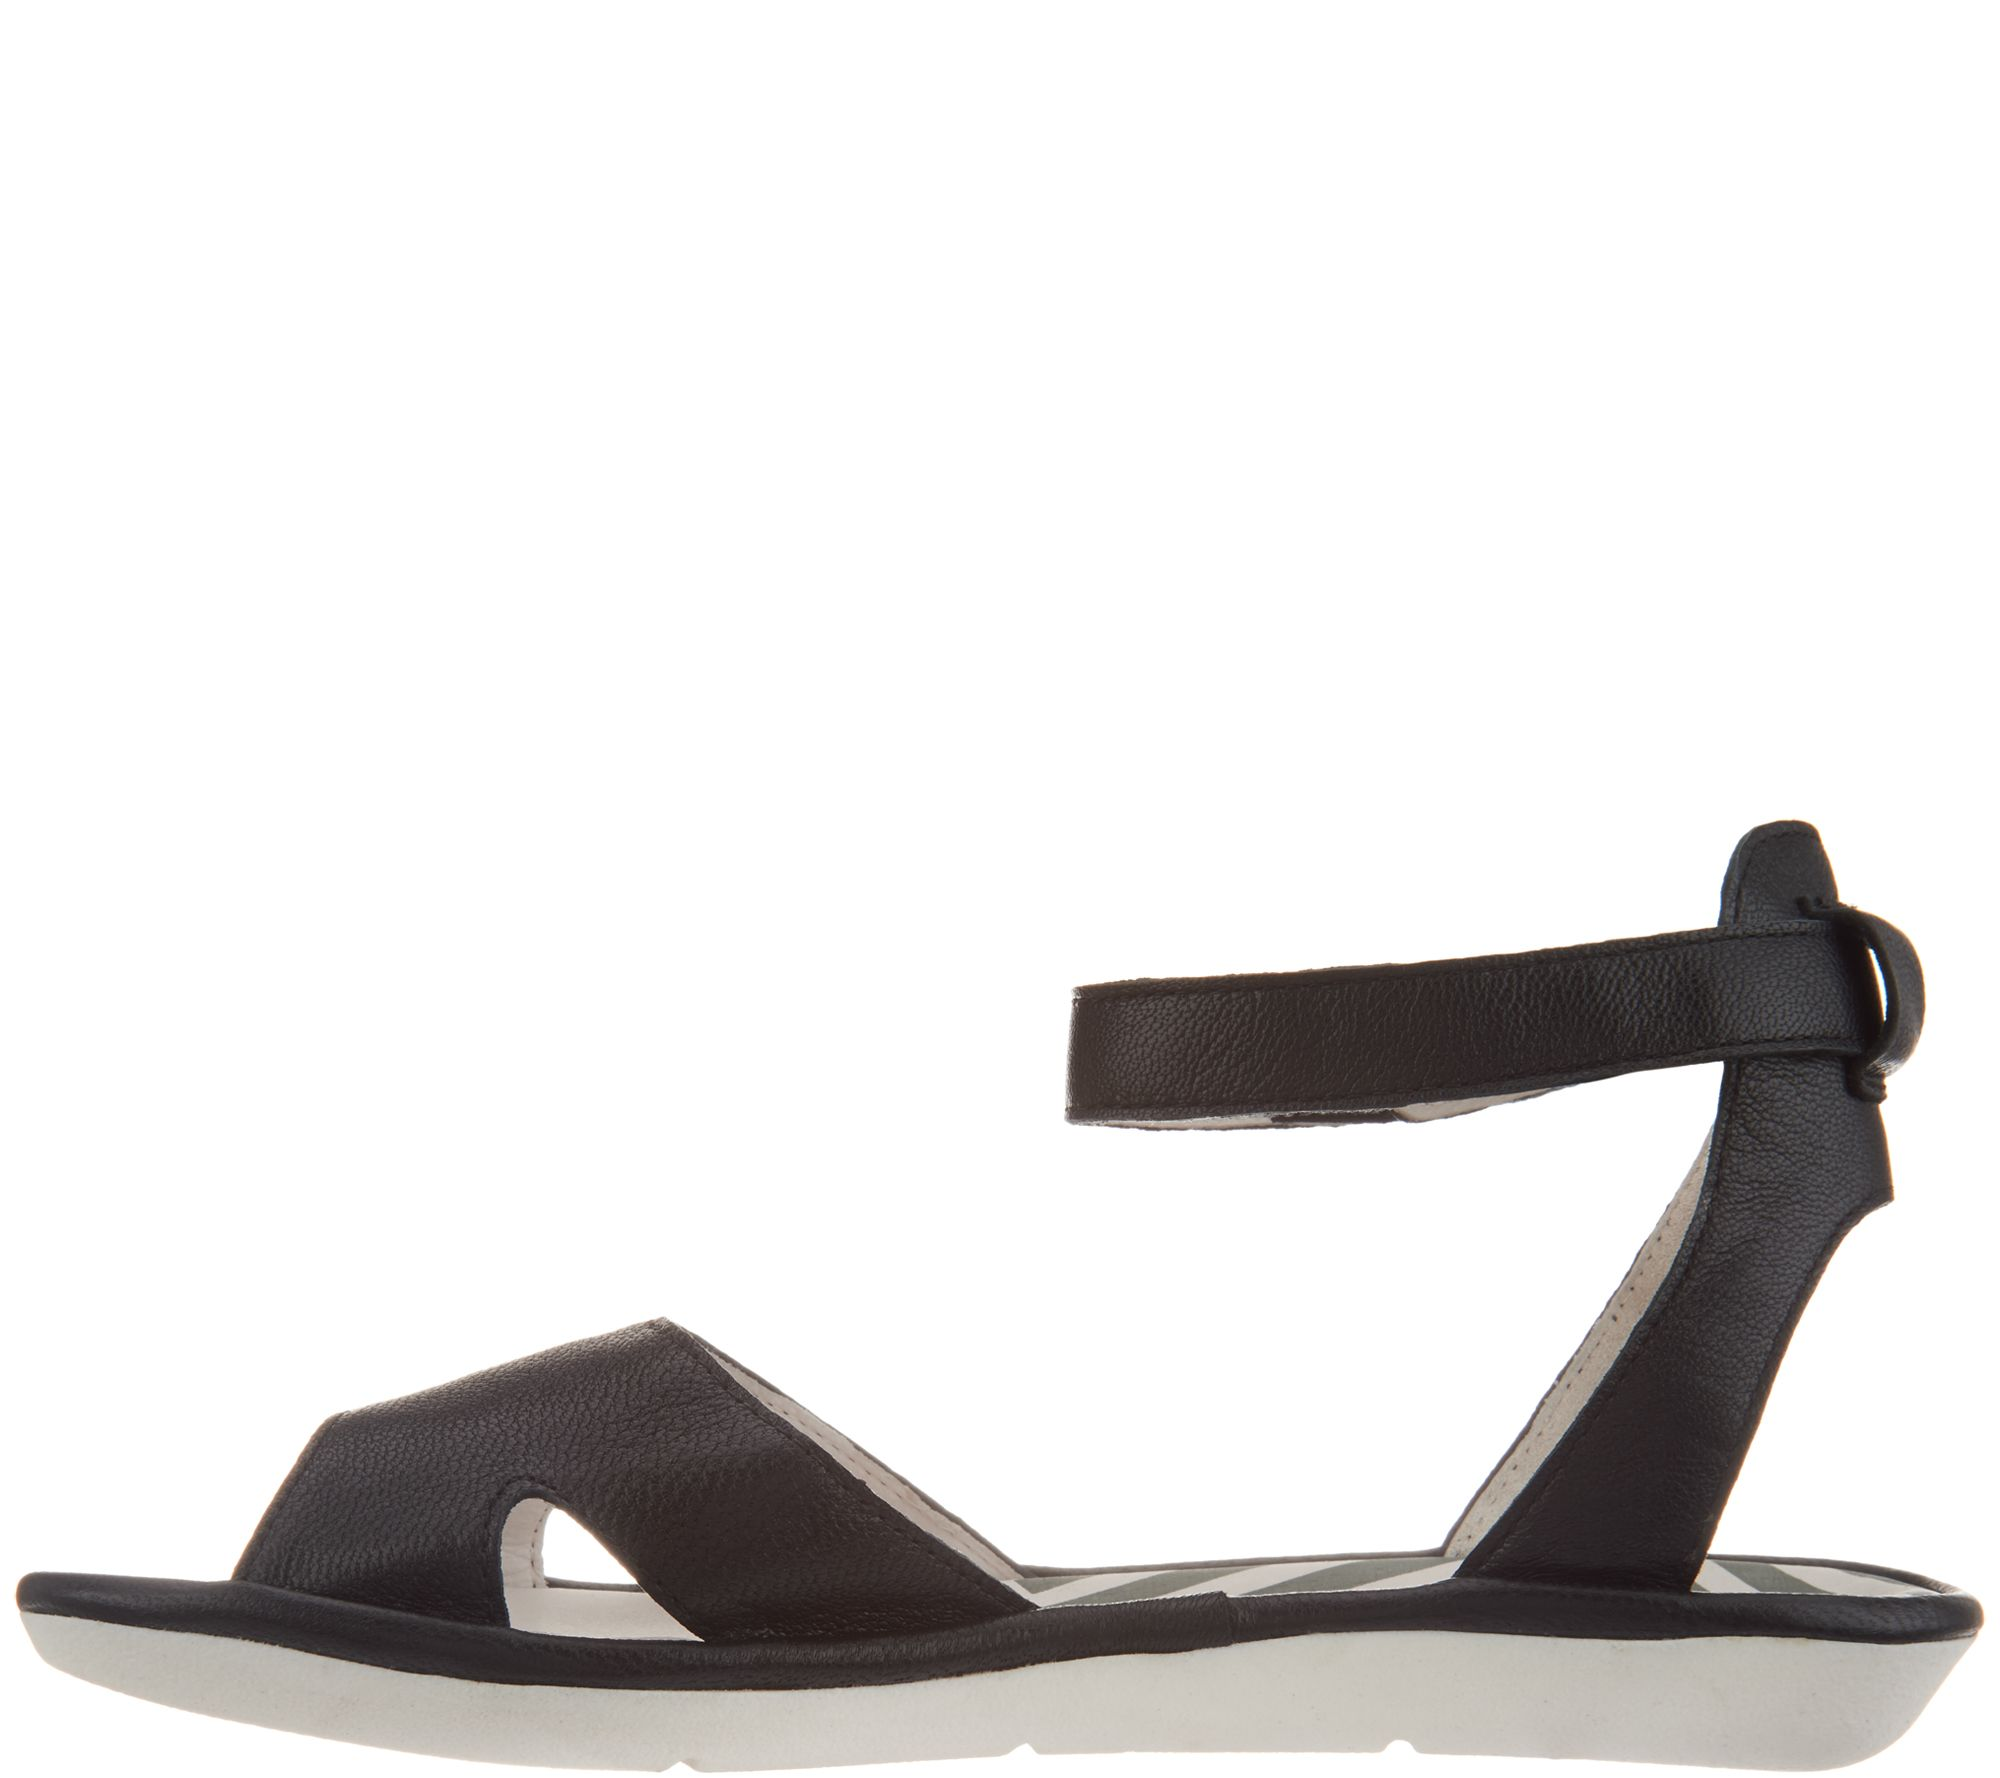 183c47ede82 FLY London Leather Ankle Strap Sandals - Mafi - Page 1 — QVC.com